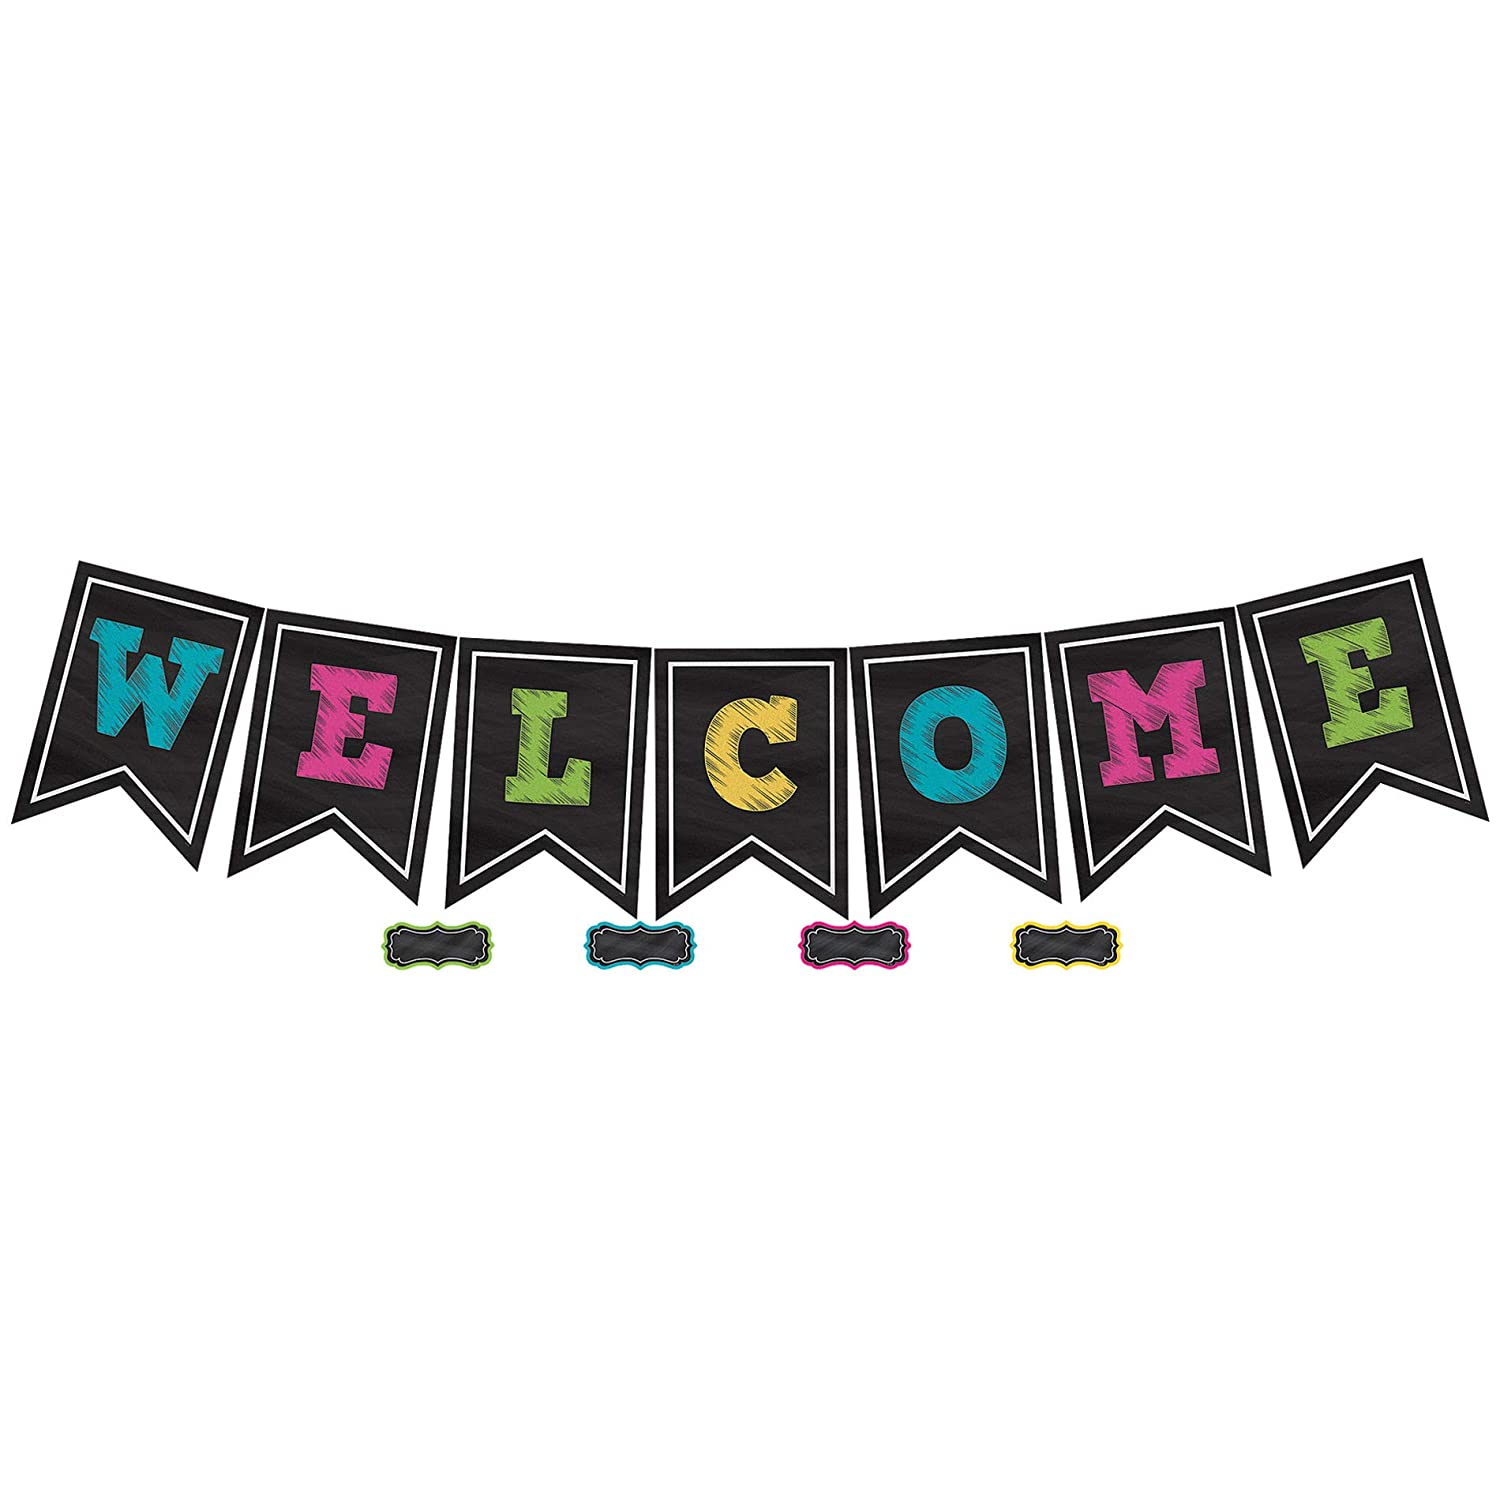 Teacher Created Resources TCR5614 Chalkboard Brights Pennants Welcome Bulletin Board, Paper, Multi